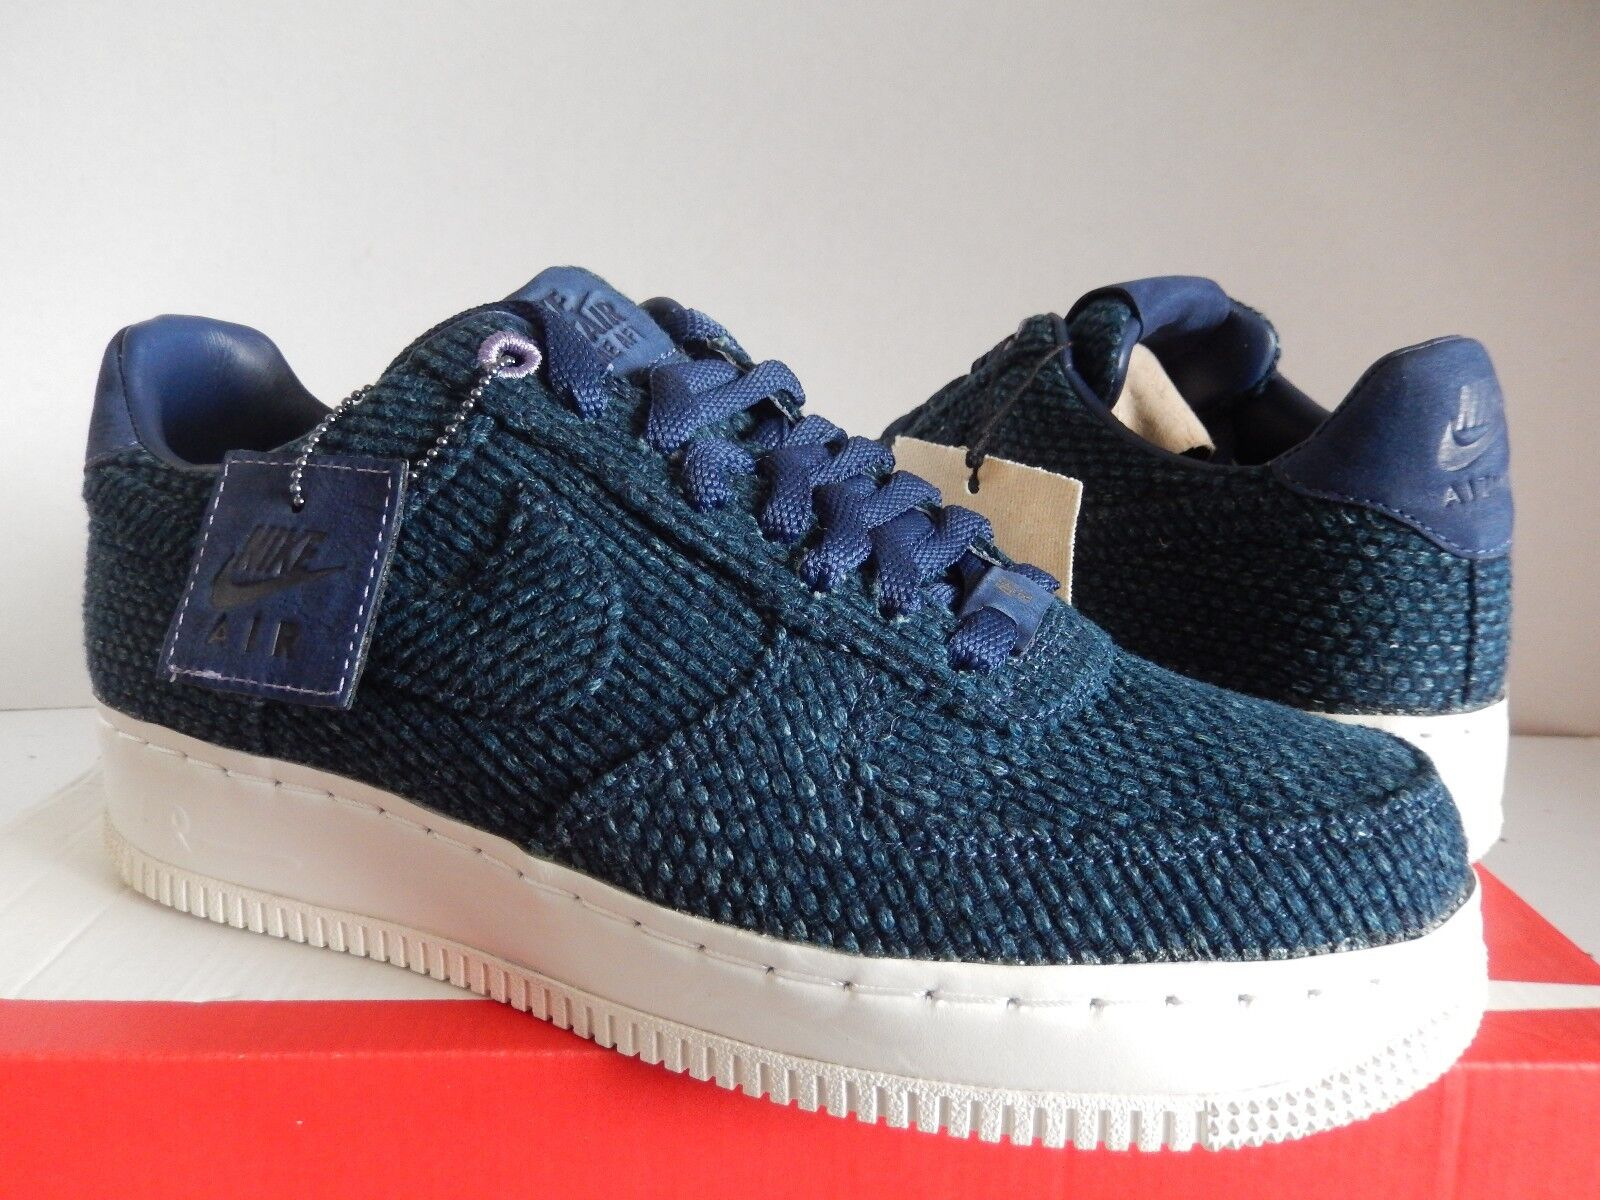 nike air force japan 1 niedrige aizome sashiko japan force blau sz 10 selten!! 4c83ca